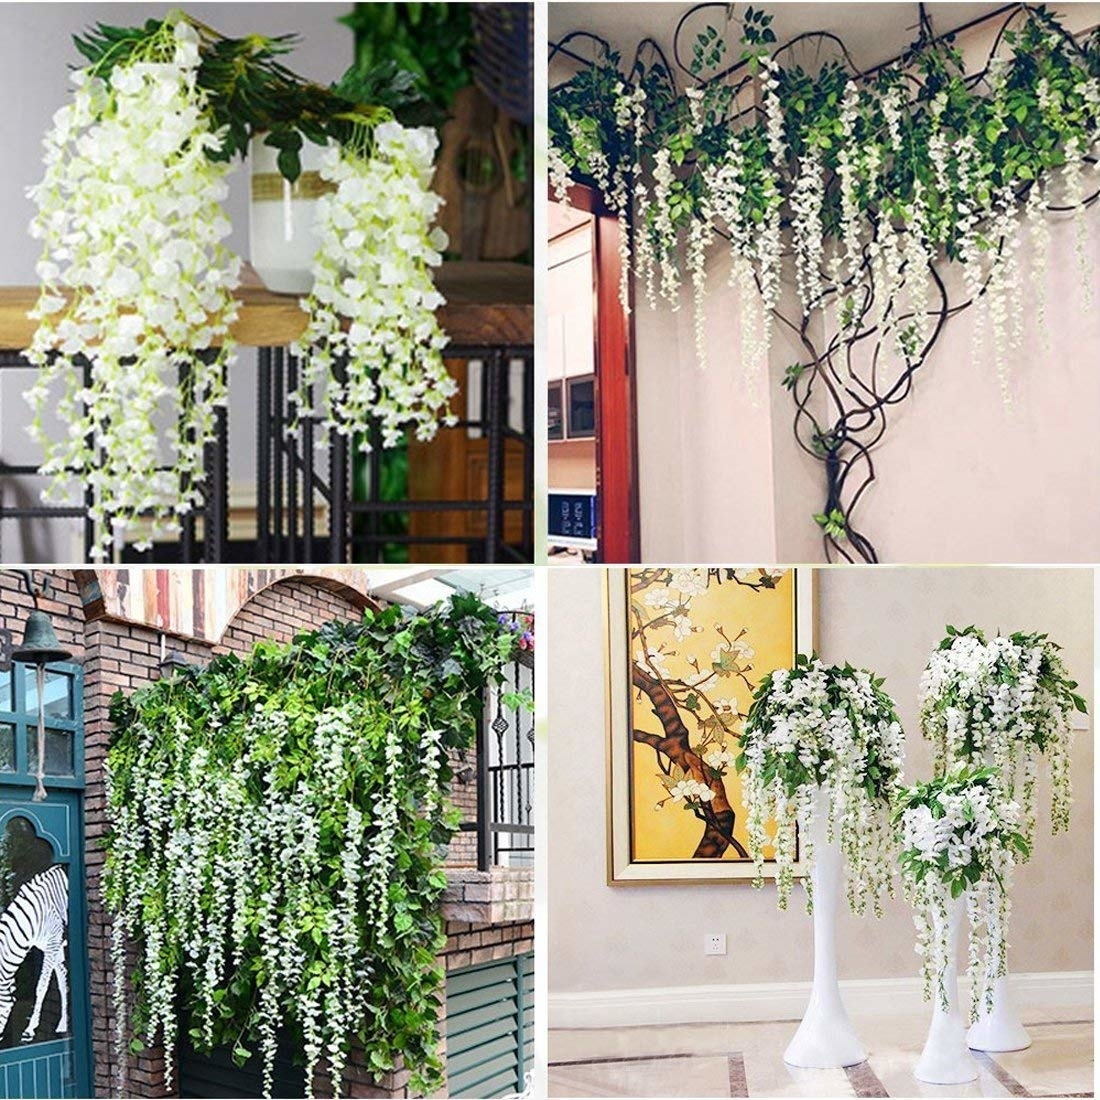 Velraptor Artificial Flowers Ivy Leaf Fake Wisteria Garland Plants Vine Shefinds